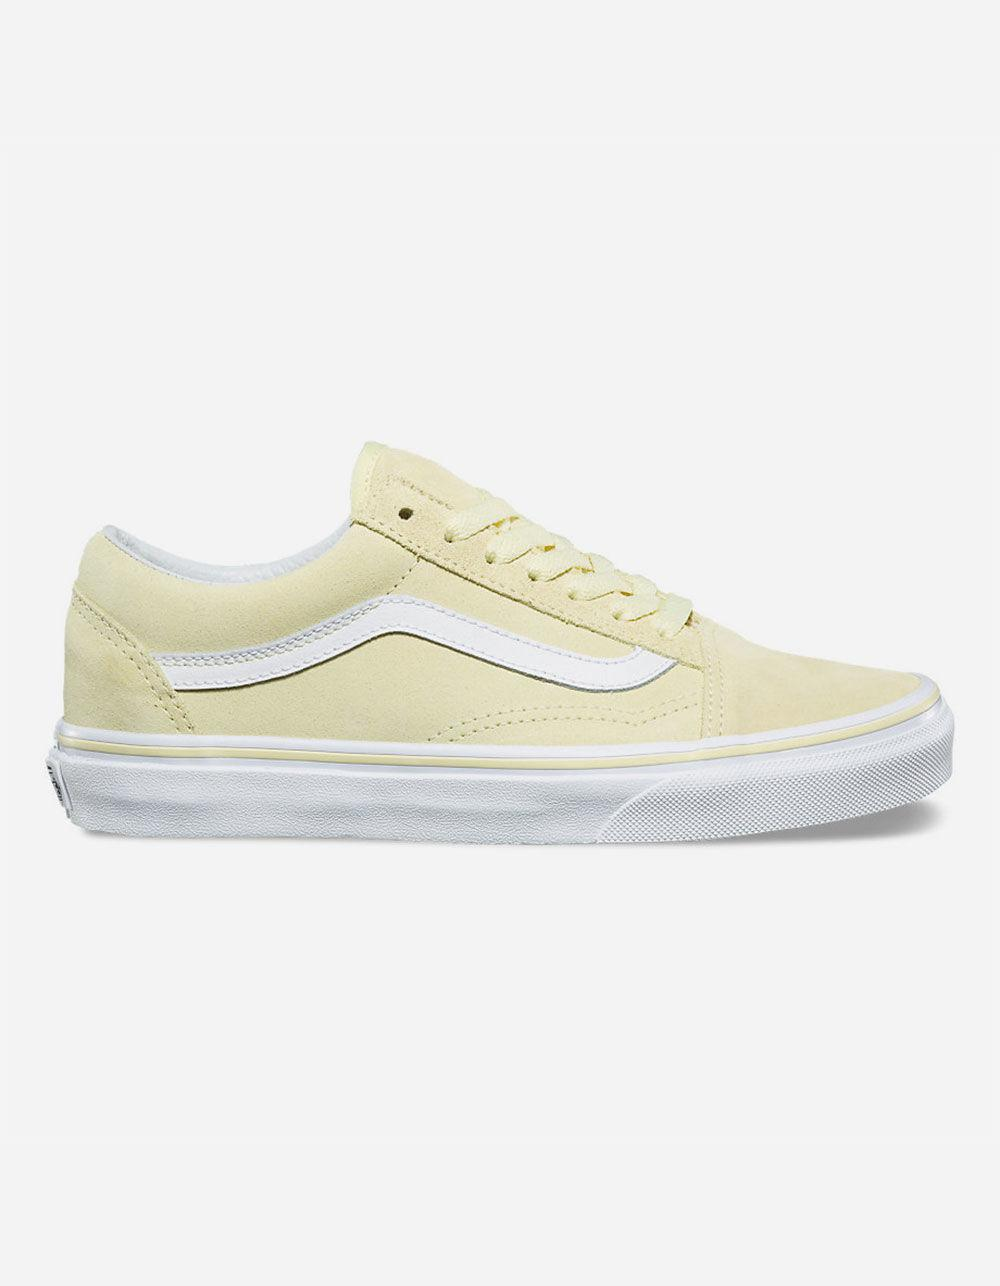 48ffbfc5a4ce5e Lyst - Vans Old Skool Suede Tender Yellow   True White Womens Shoes ...